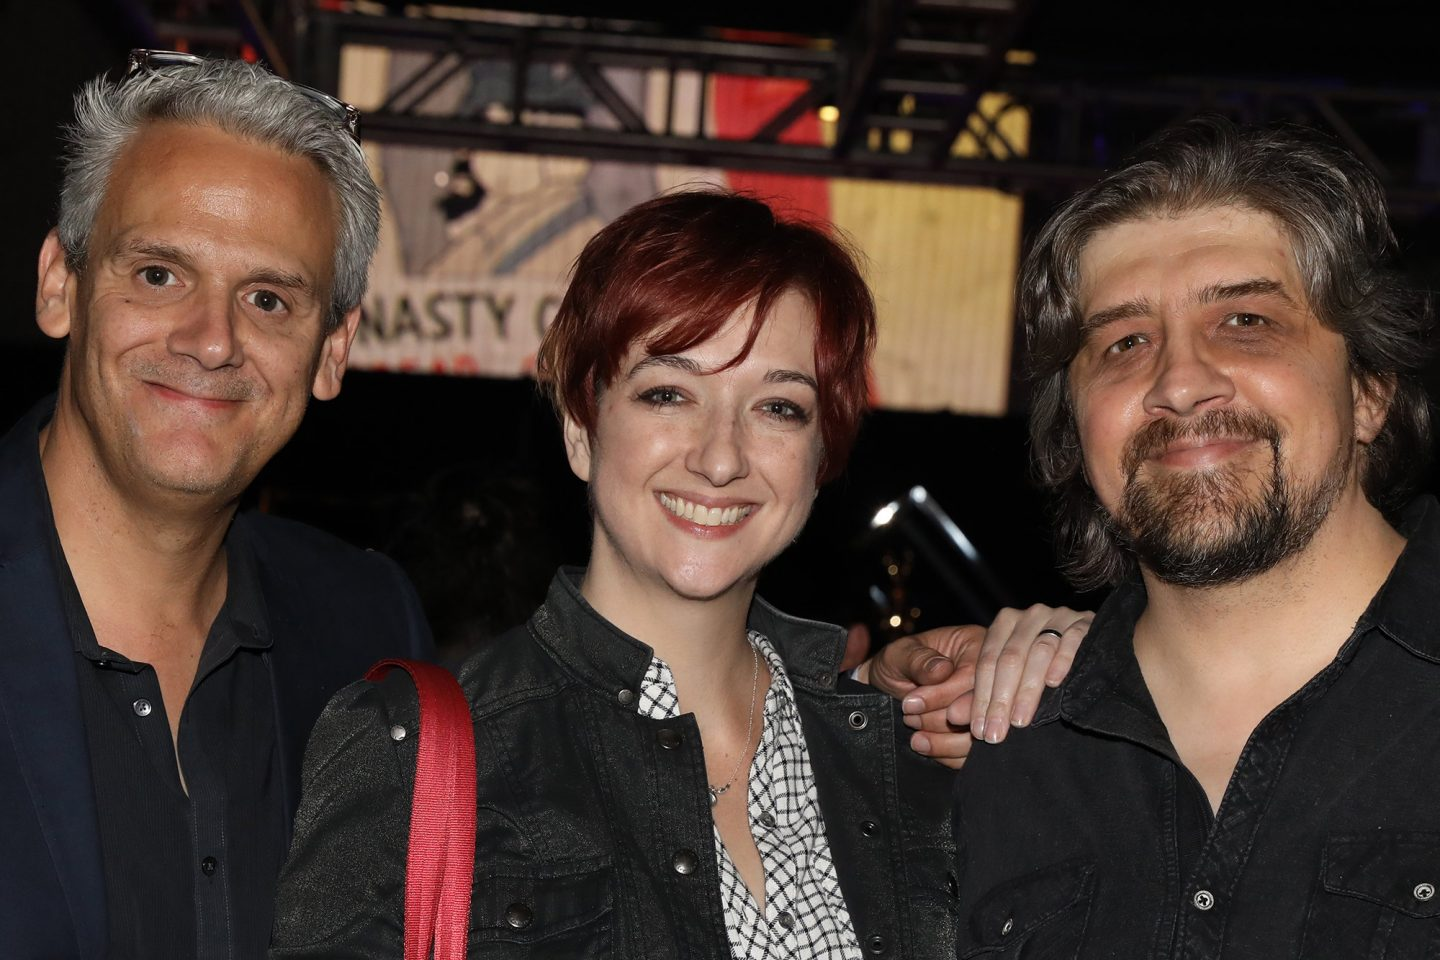 From l-r, Sam Register (president, Warner Bros. Animation and Warner Digital Series), Warner Bros. Animation producer Lauren Faust (DC Super Hero Girls) and producer Craig McCracken (The Powerpuff Girls, Wander Over Yonder).